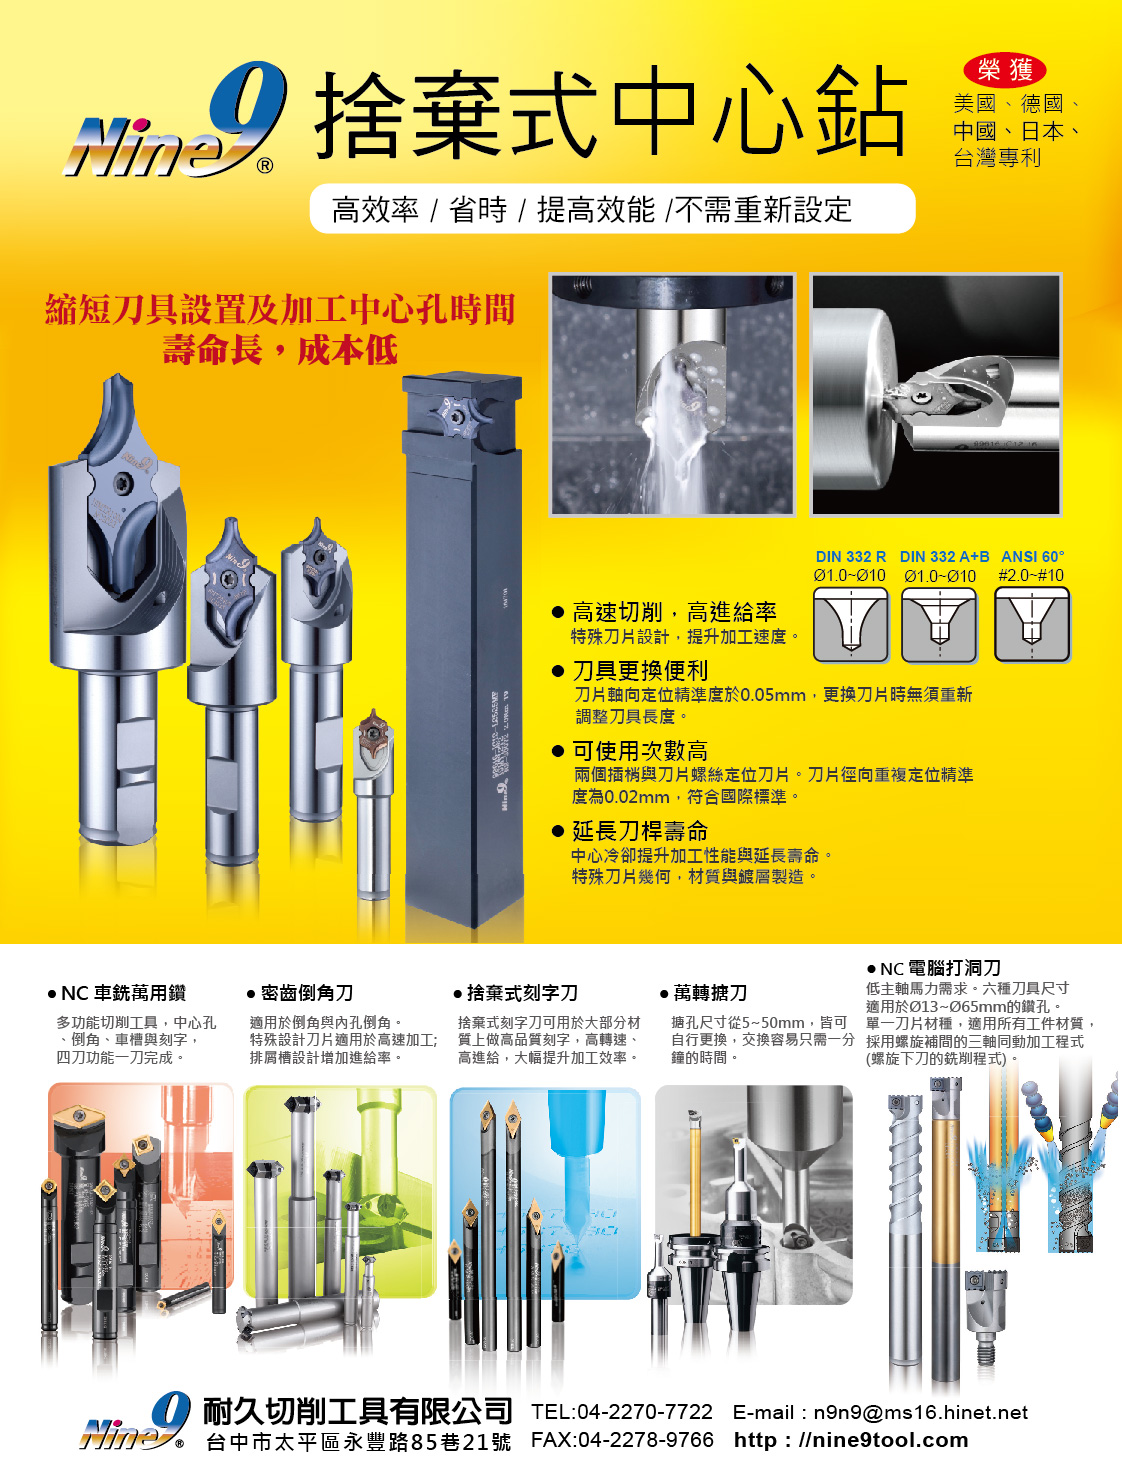 NINE-9 CUTTING TOOLS CO., LTD.